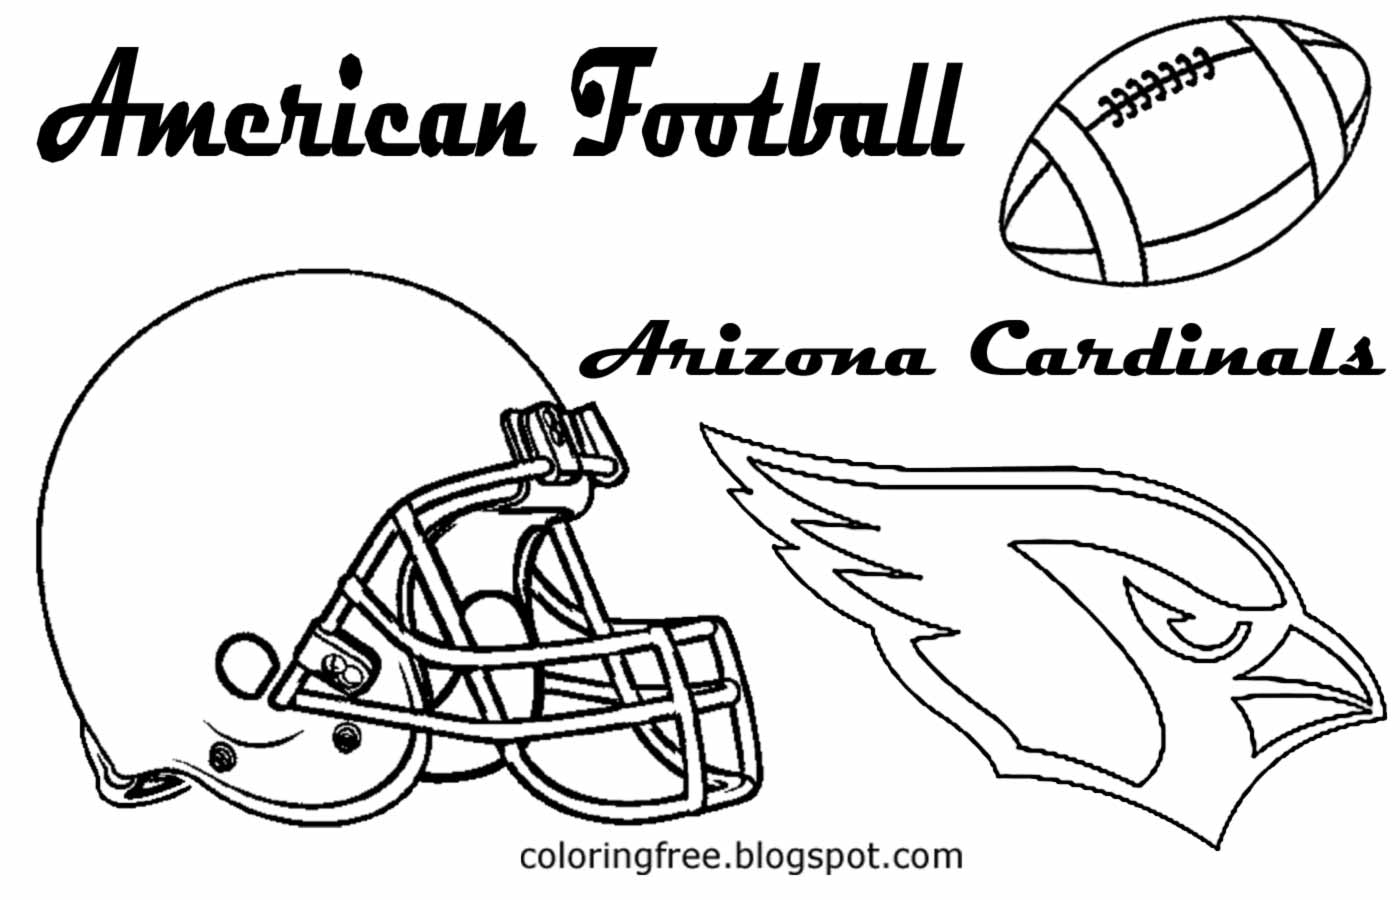 cardinals football coloring pages - photo#8